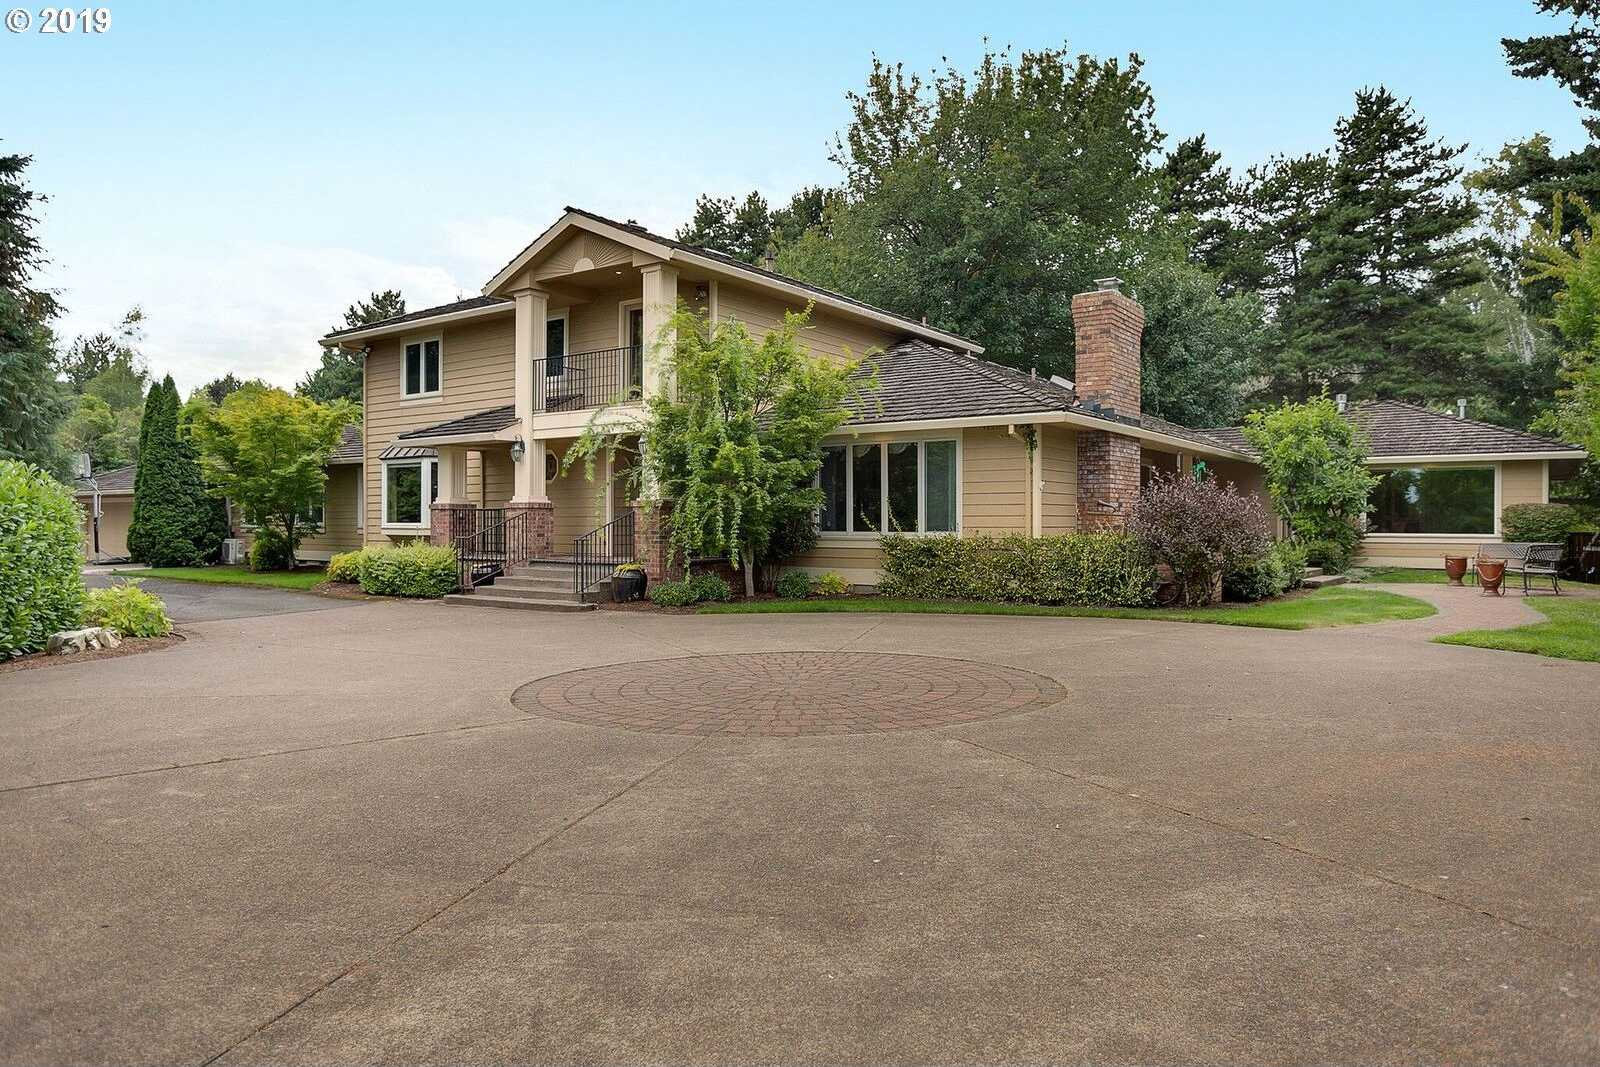 $1,024,900 - 6Br/6Ba -  for Sale in Tigard